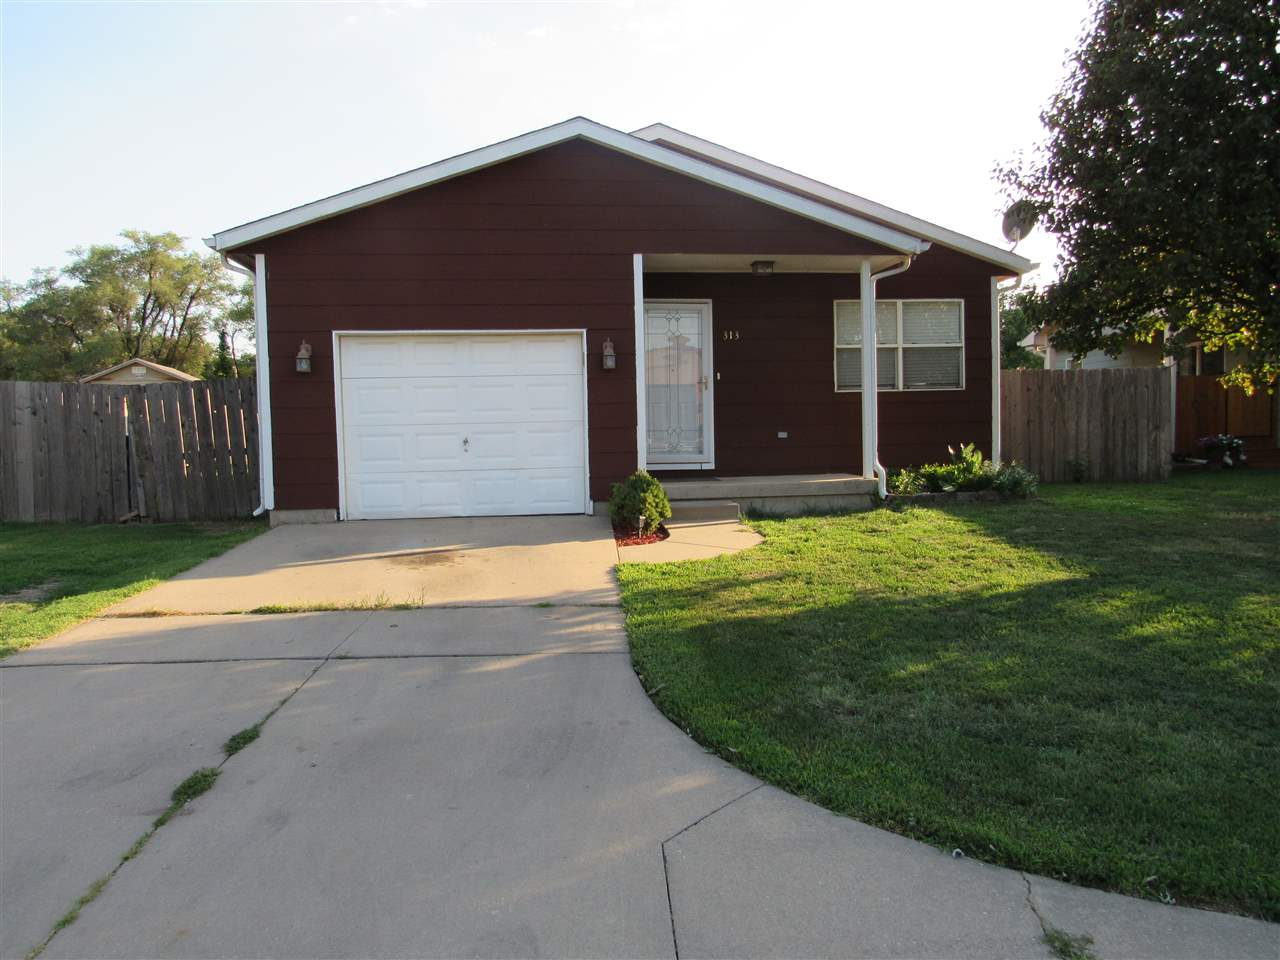 Fantastic Value with No neighbors directly behind you.   Ranch style 3 bedroom, one bath is ready to